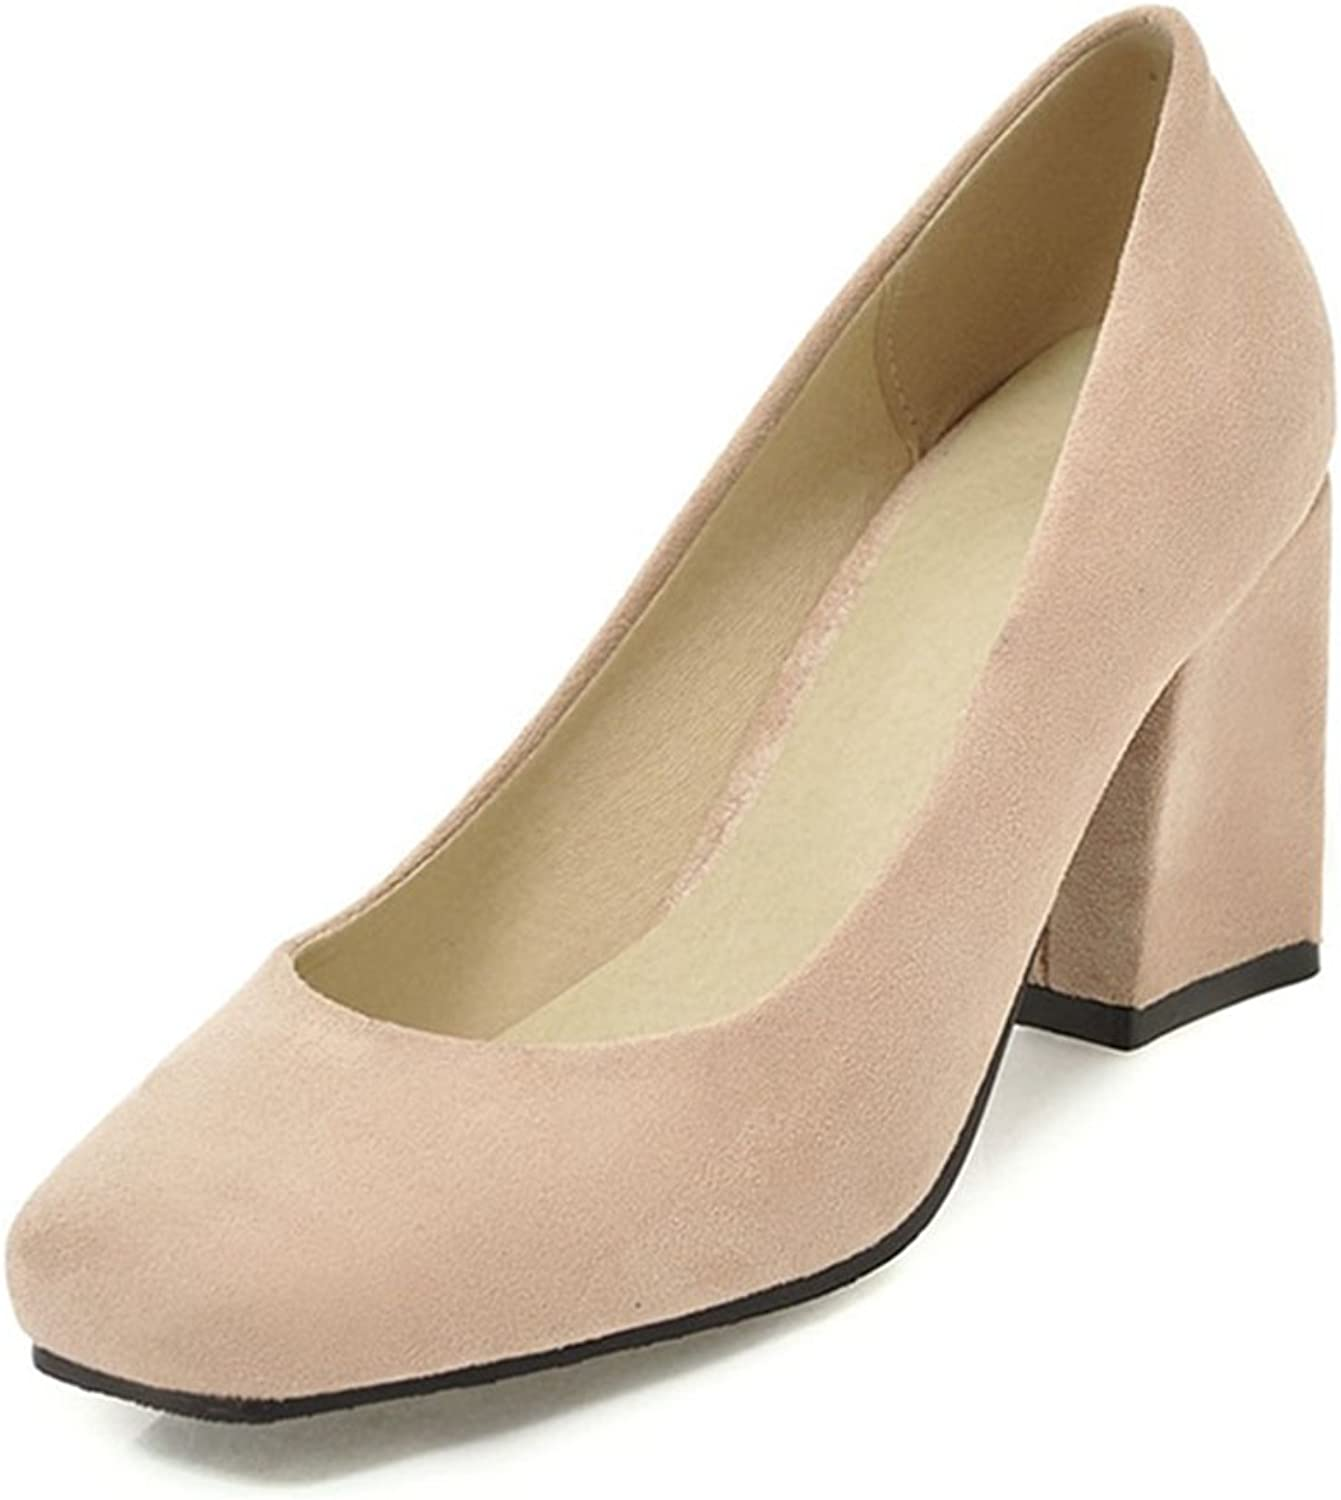 York Zhu Women Pumps, Elegant Solid Slip-on Square Toe Square Heel Office shoes